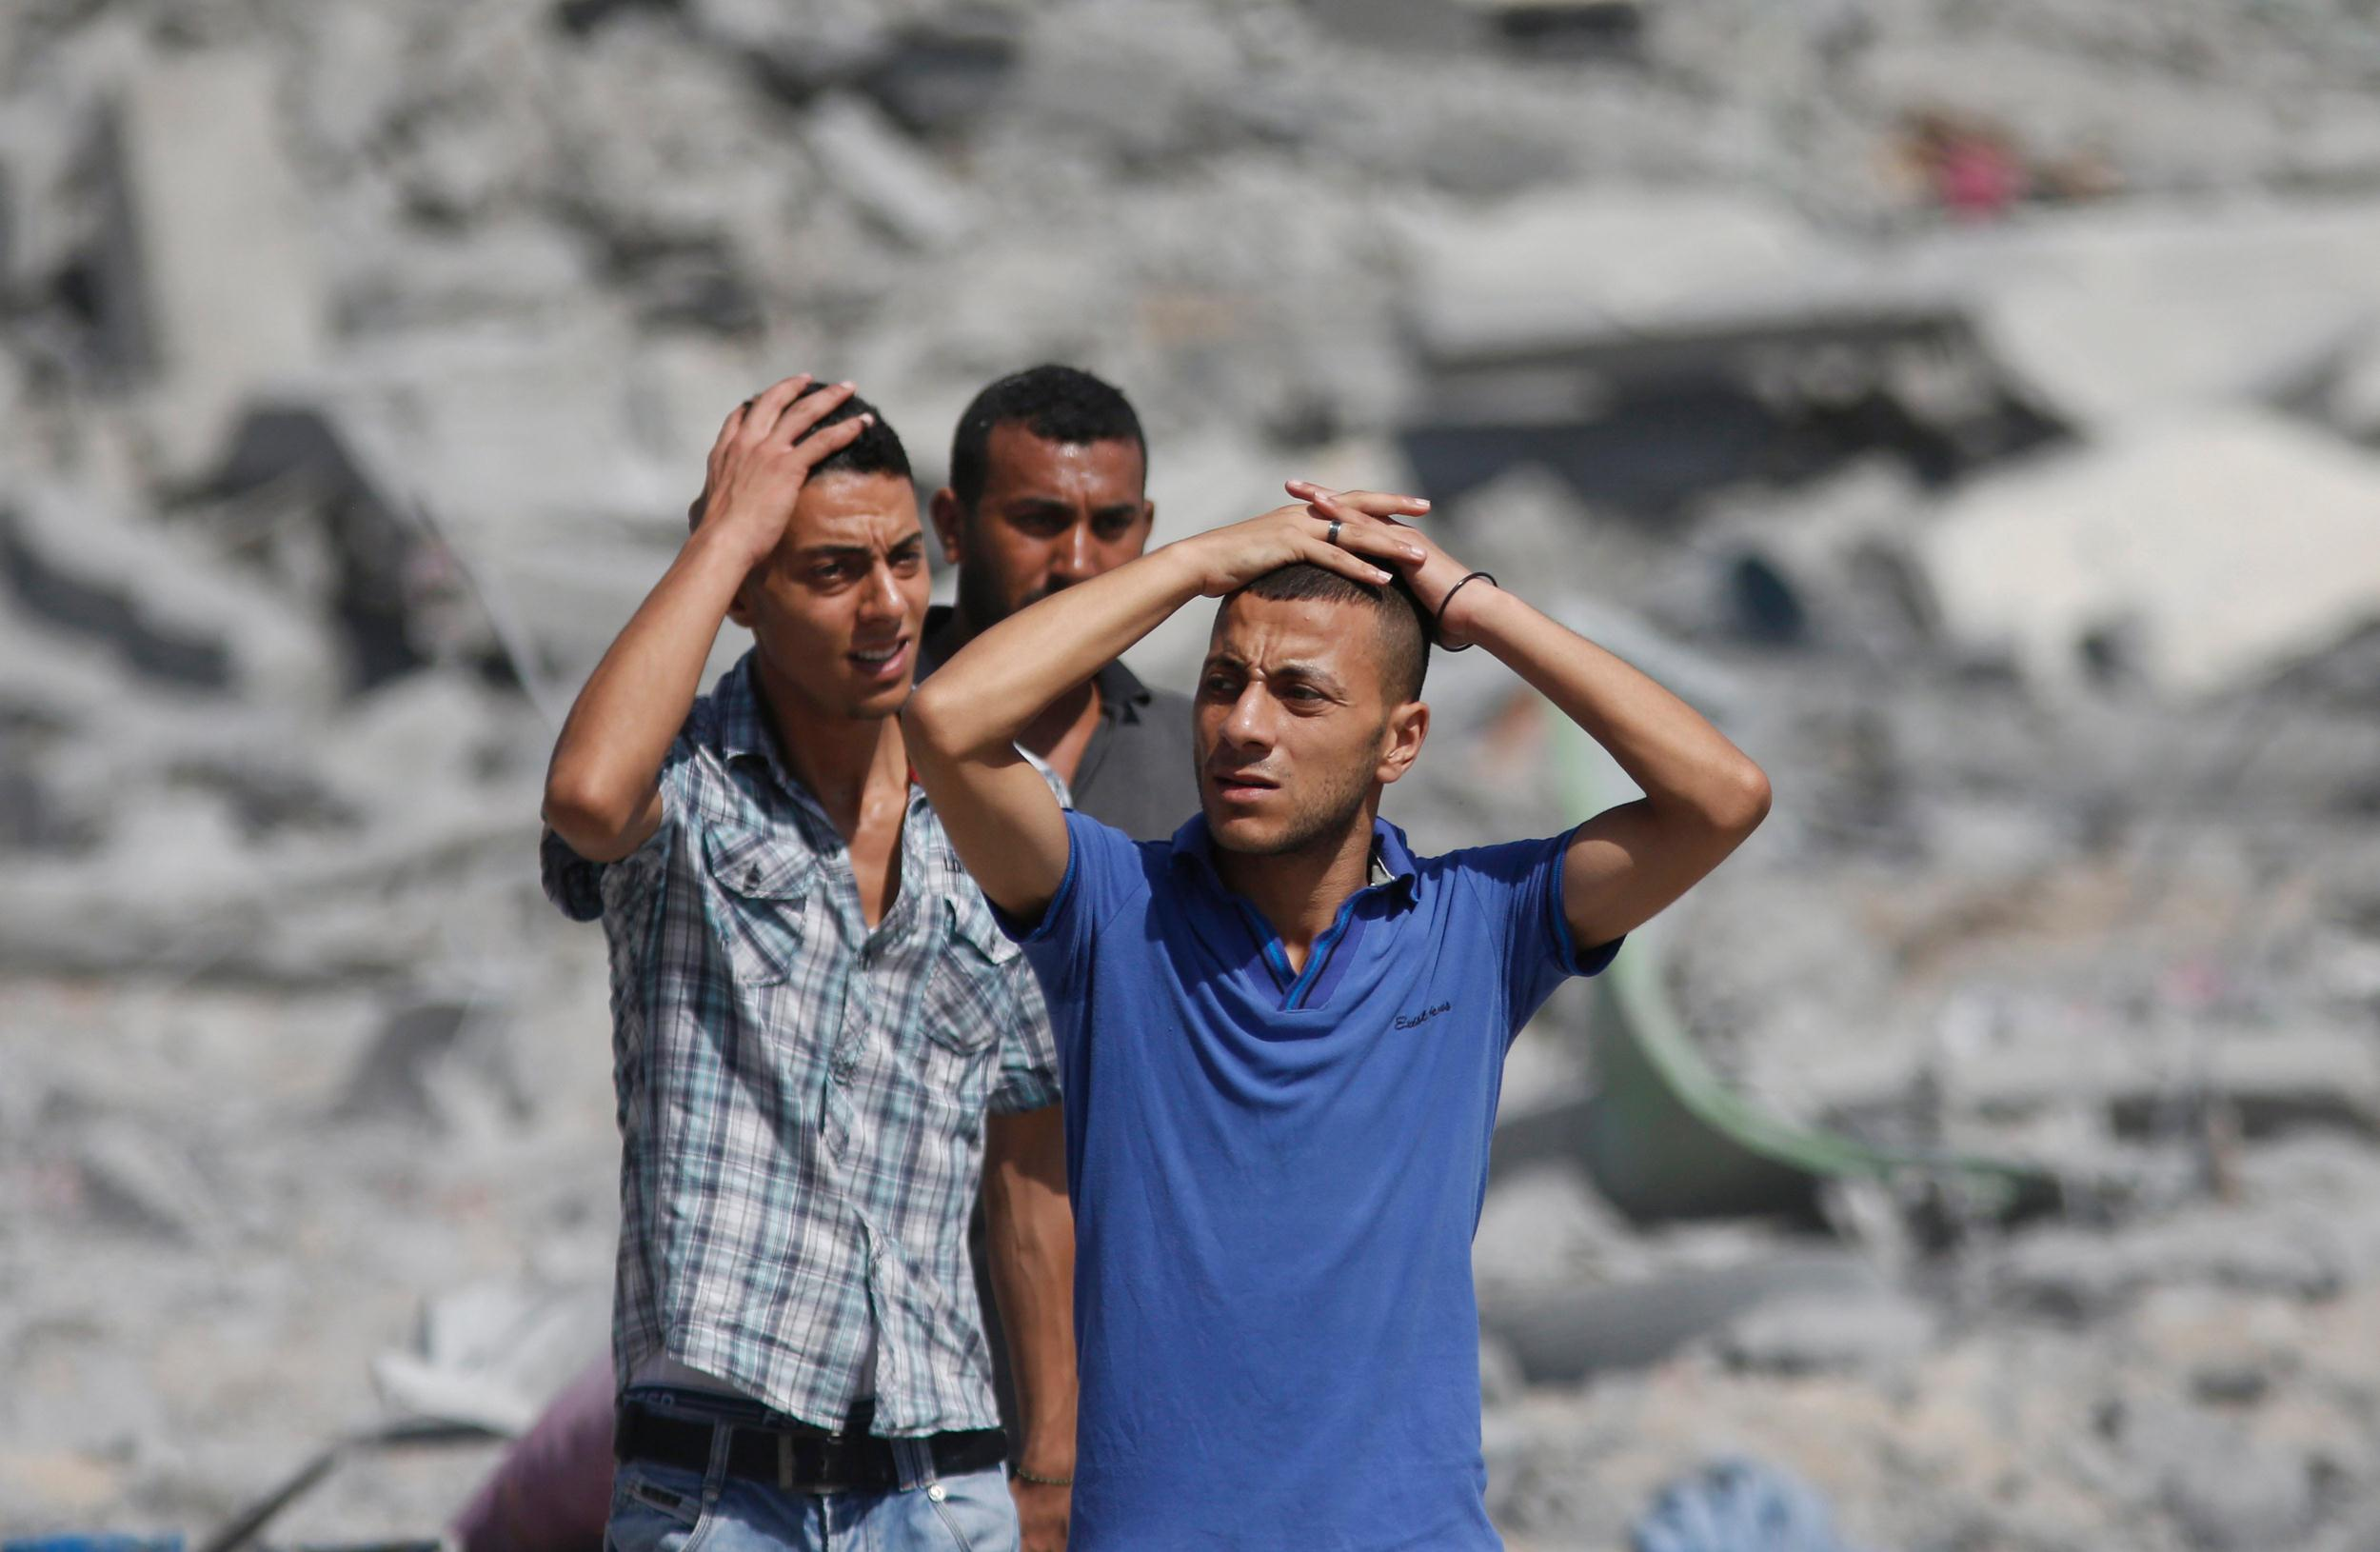 Image: Palestinians react as they walk in the heavily bombed town of Beit Hanoun